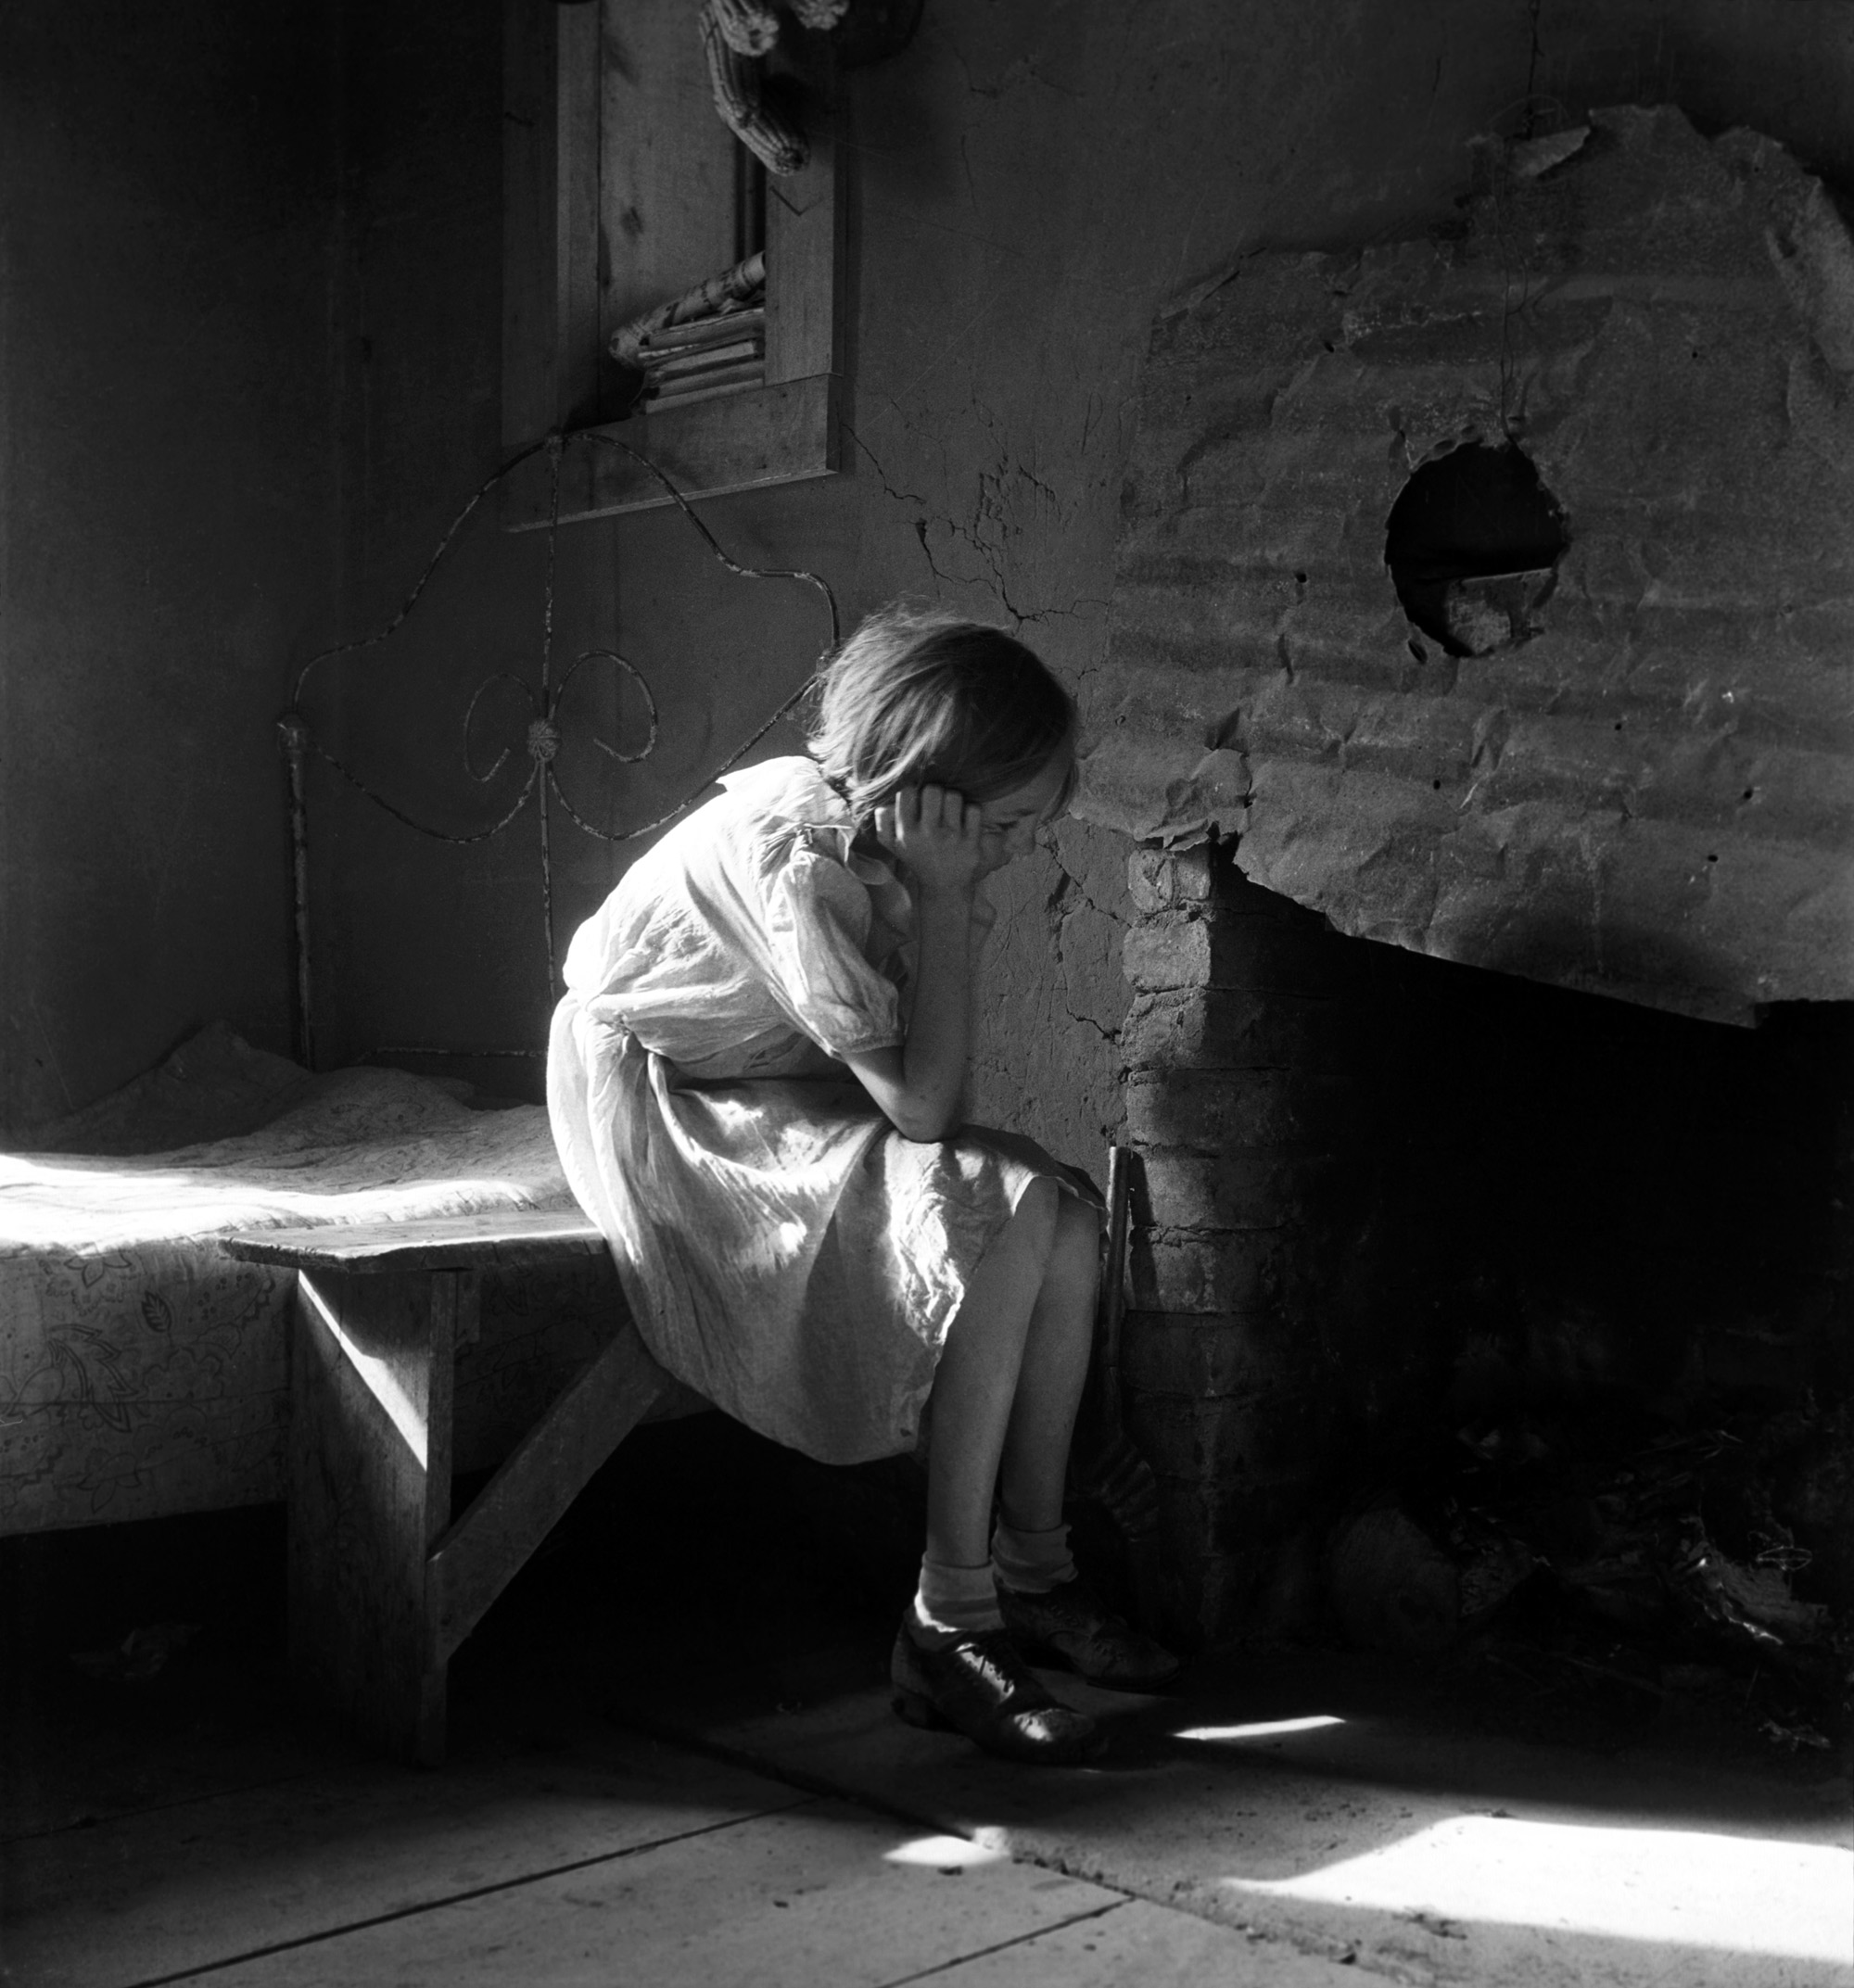 Young girl in 1930s garb sits on a bench in a bedroom, looking sadly into the fireplace